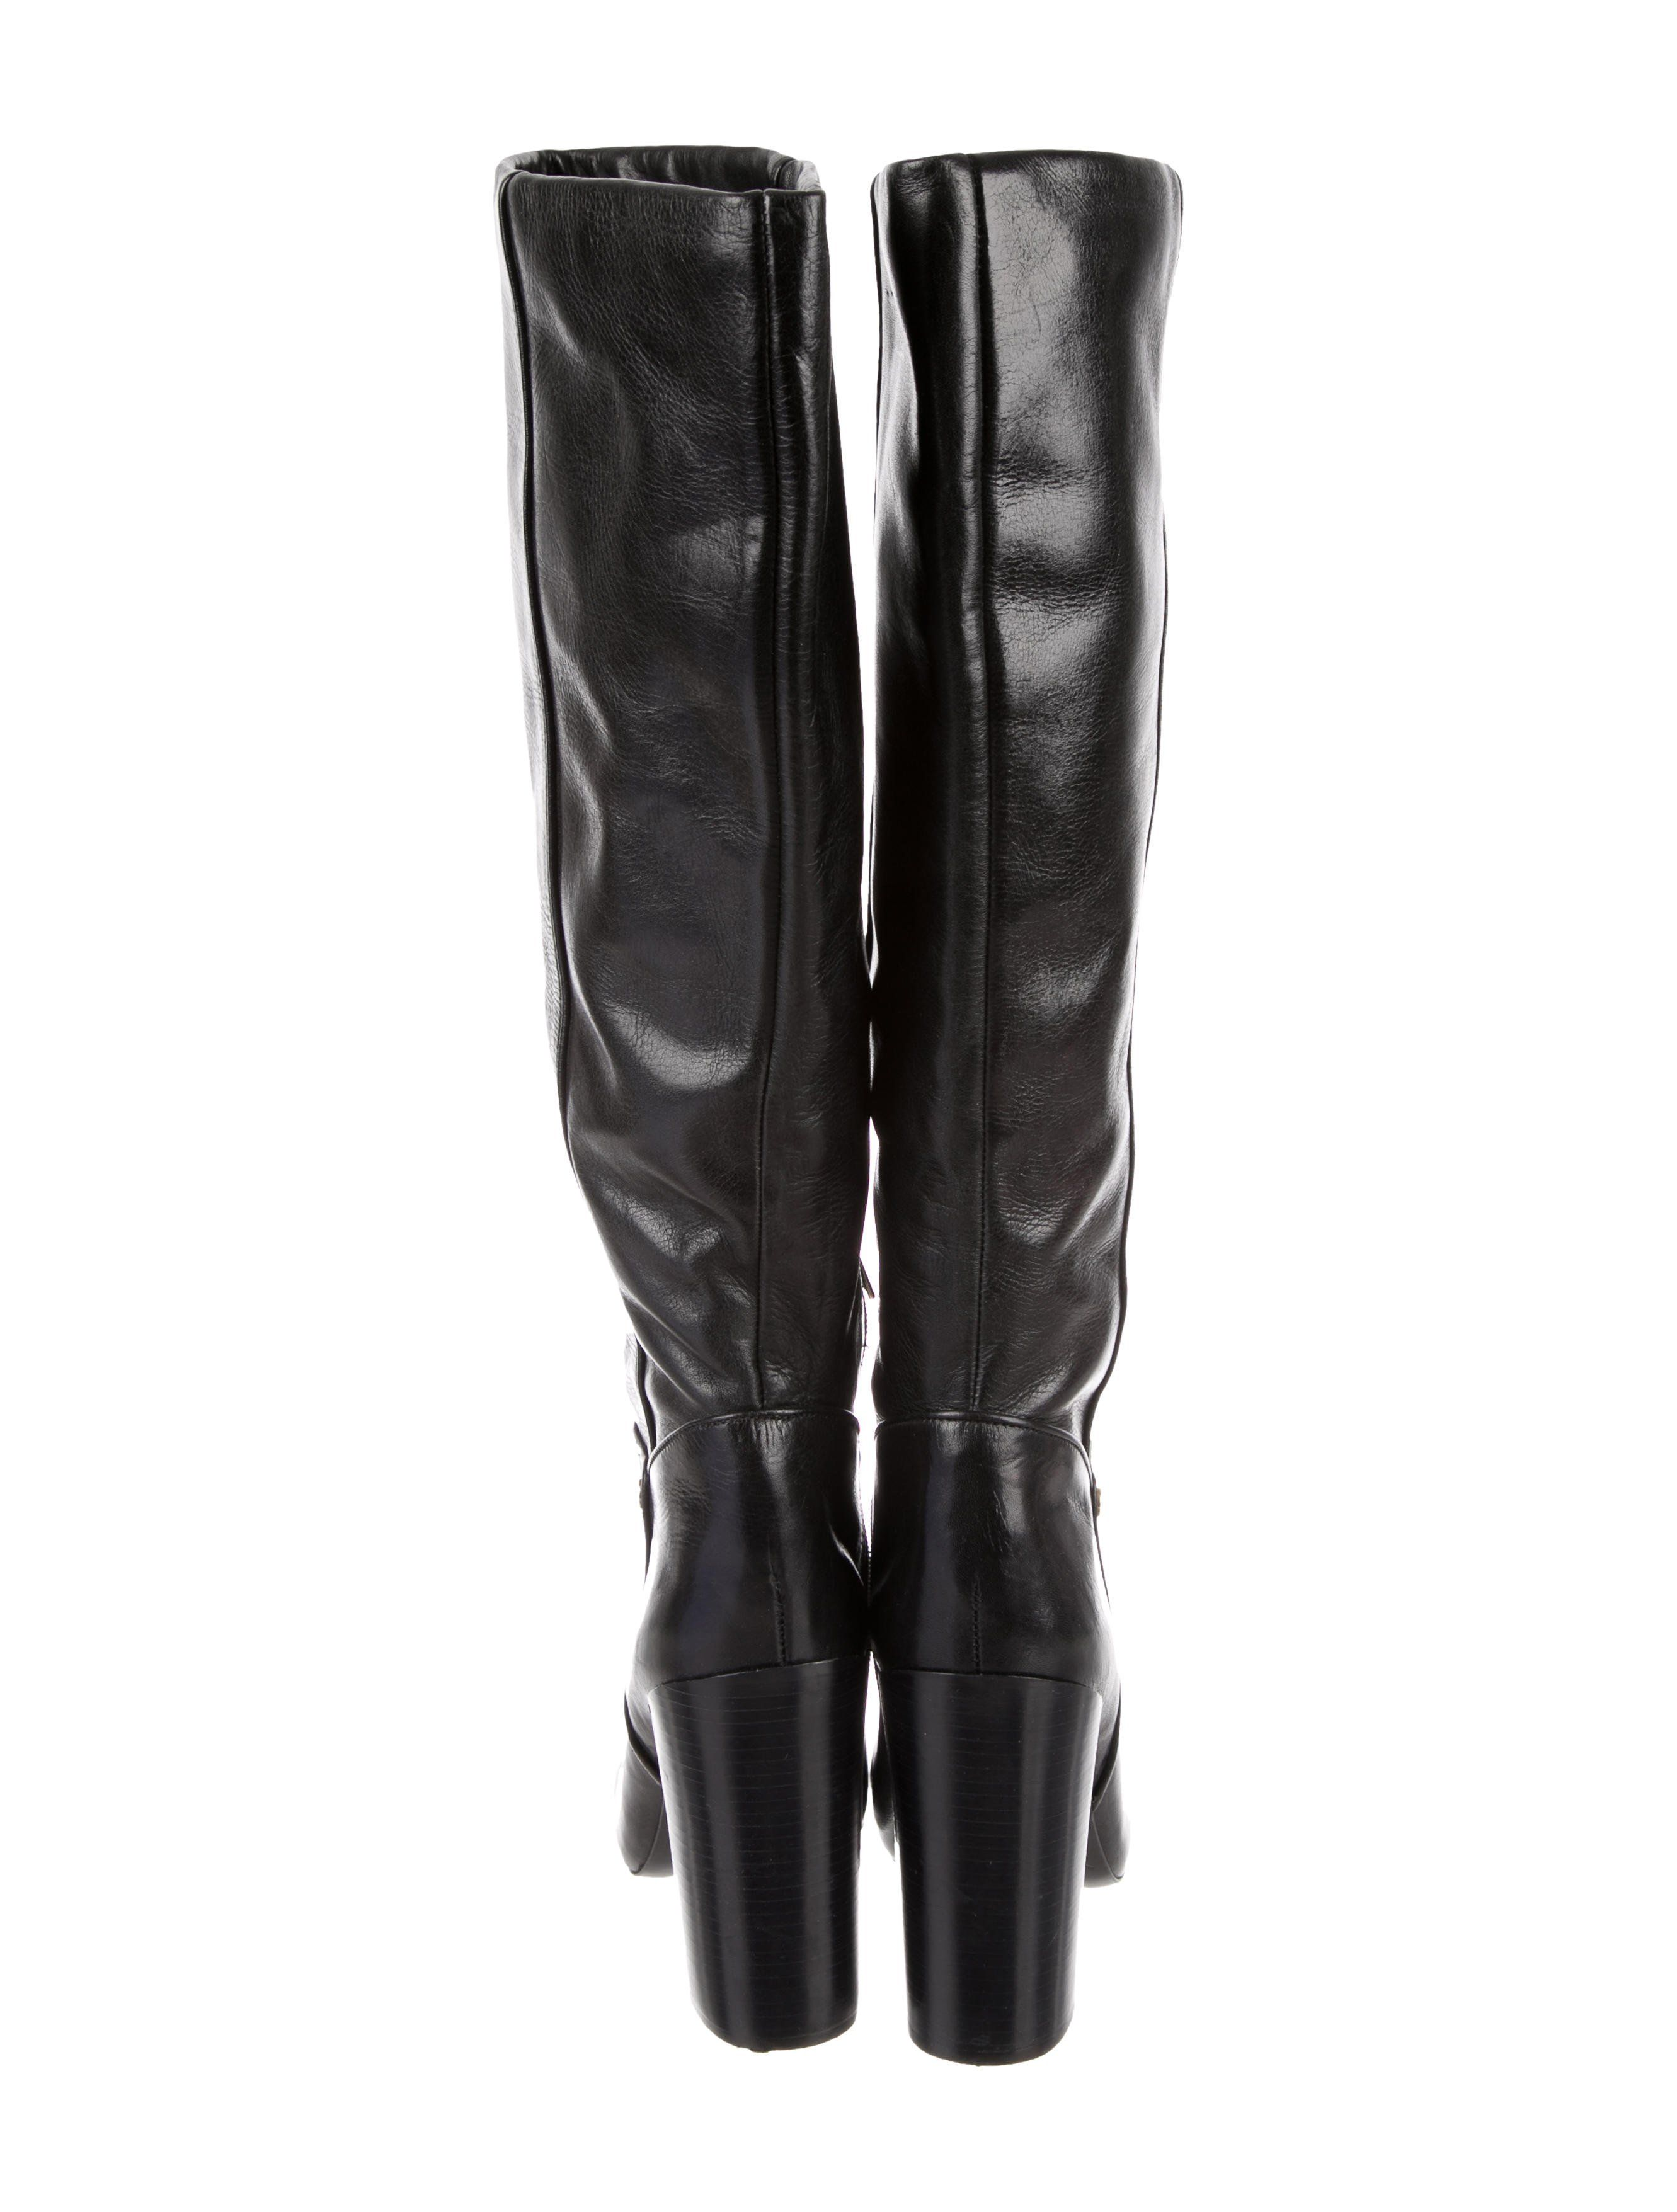 01b5c1bf2ce6a Black leather Tory Burch round-toe knee-high boots with tonal stitching